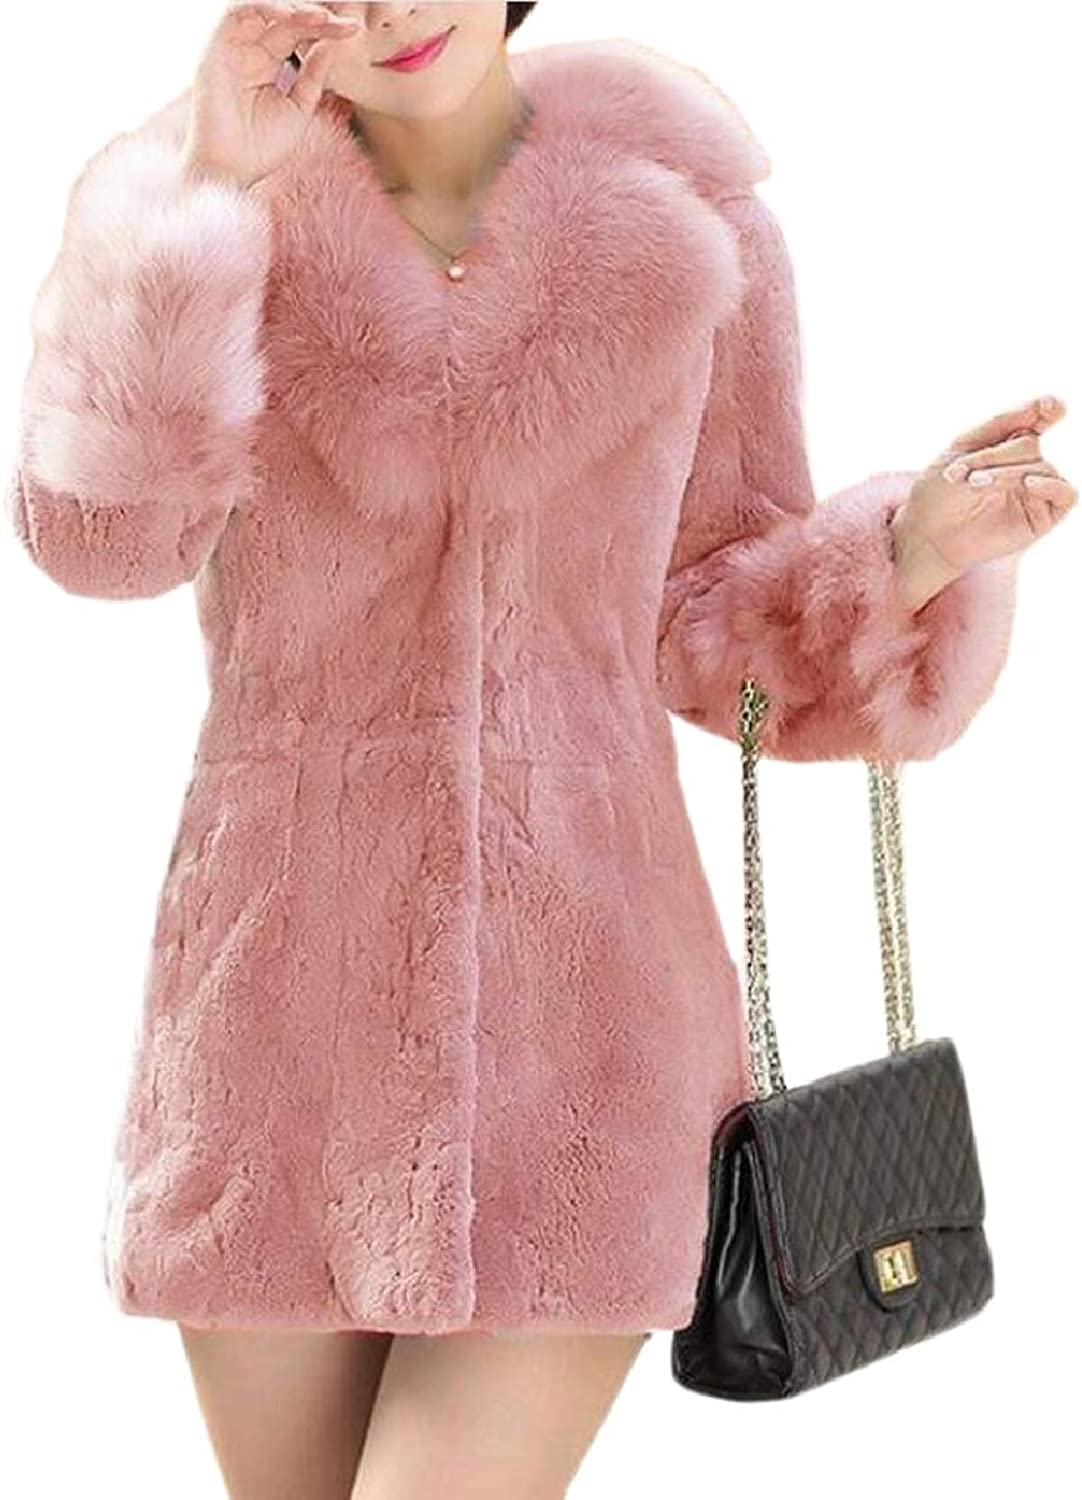 CBTLVSN Women's Solid Faux Fur Coat Jacket Fall Winter Fluffy Warm Outerwear